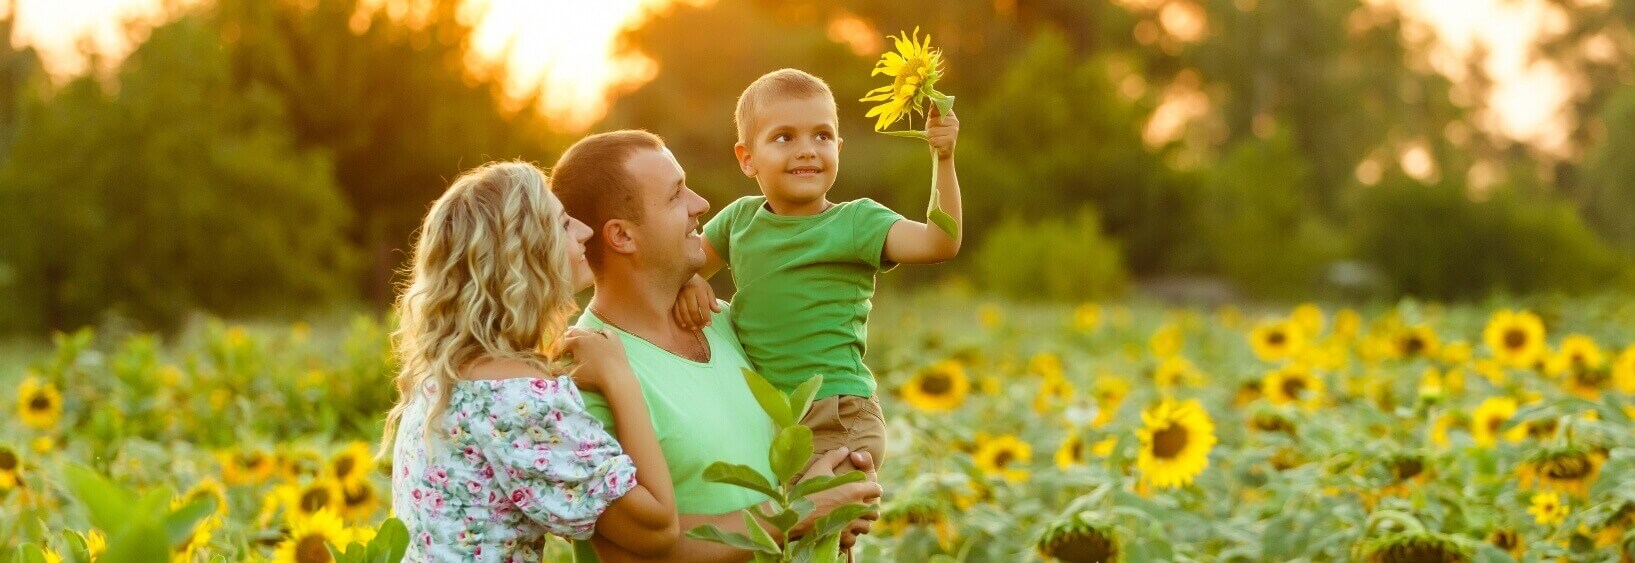 mother and father holding son and smiling in sunflower field